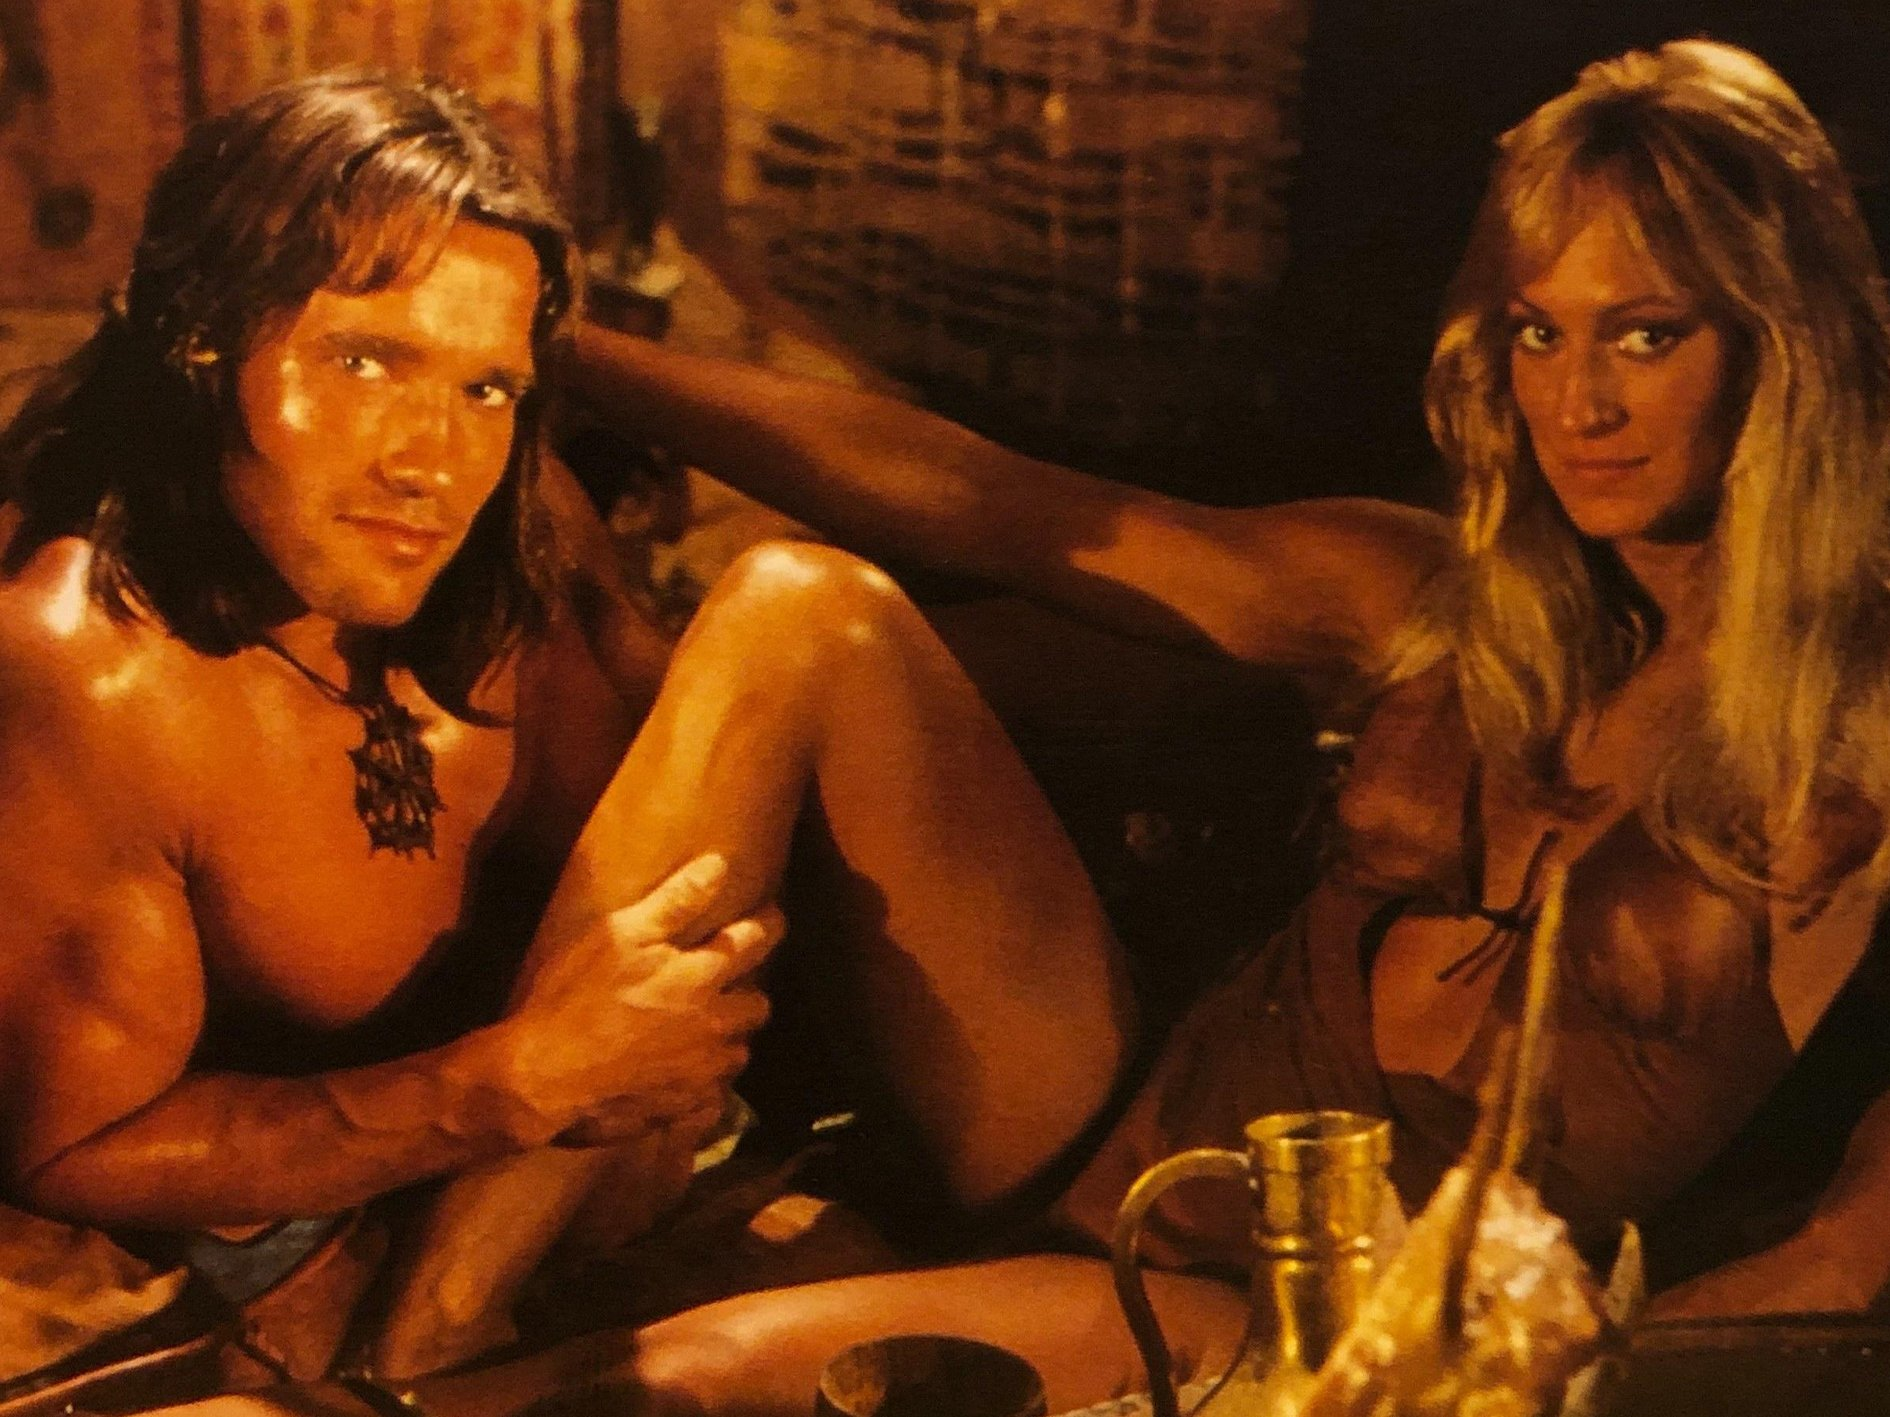 Conan the Barbarian Arnold Schwarzenegger Sandahl Bergman Crush Your Enemies With These 10 Facts About Conan The Barbarian